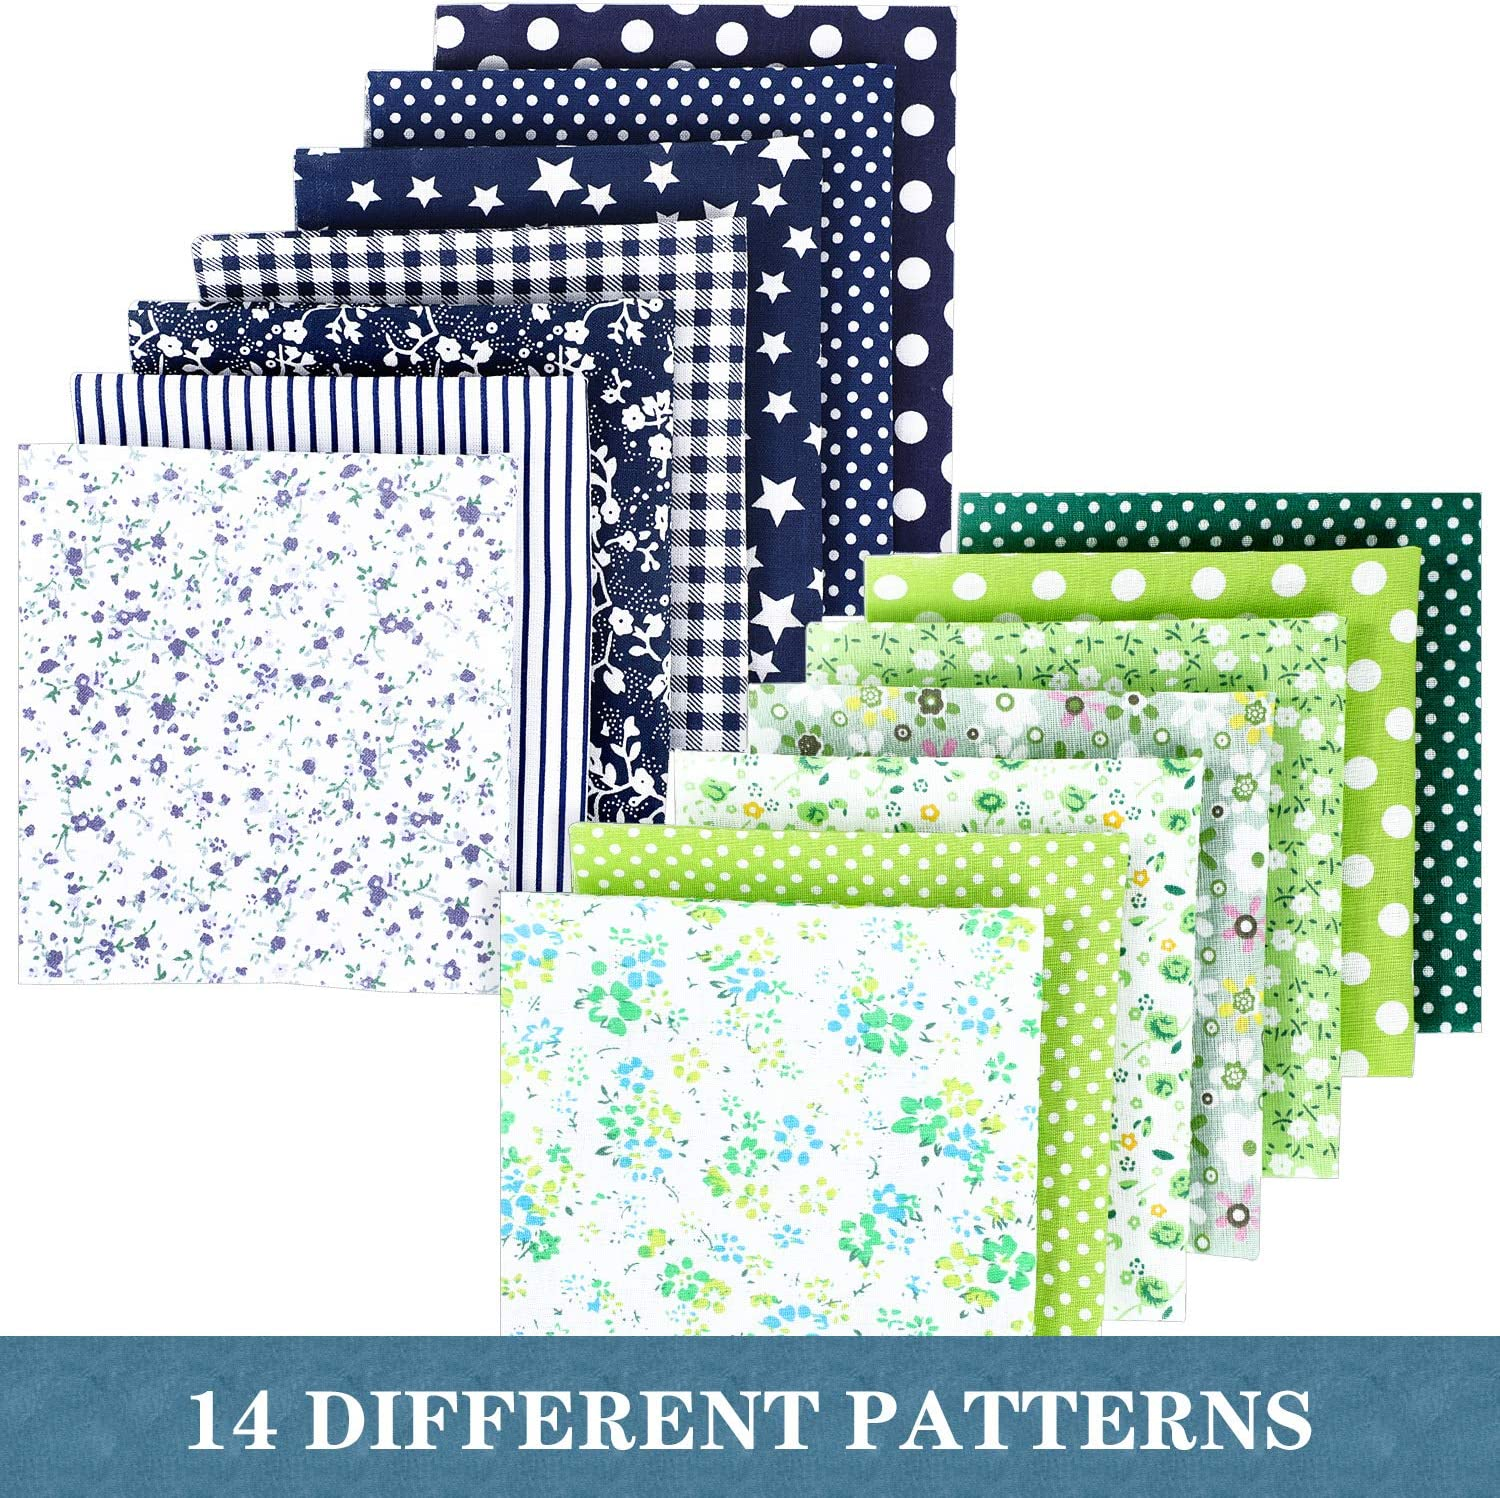 14 Pieces Cotton Fabric Patchwork Squares Bundle Craft Quilting Sewing Patchwork Different Pattern Cloths Handmade Accessories with 13.1 Yards Elastic Rope and 20 Pieces Metal Wires